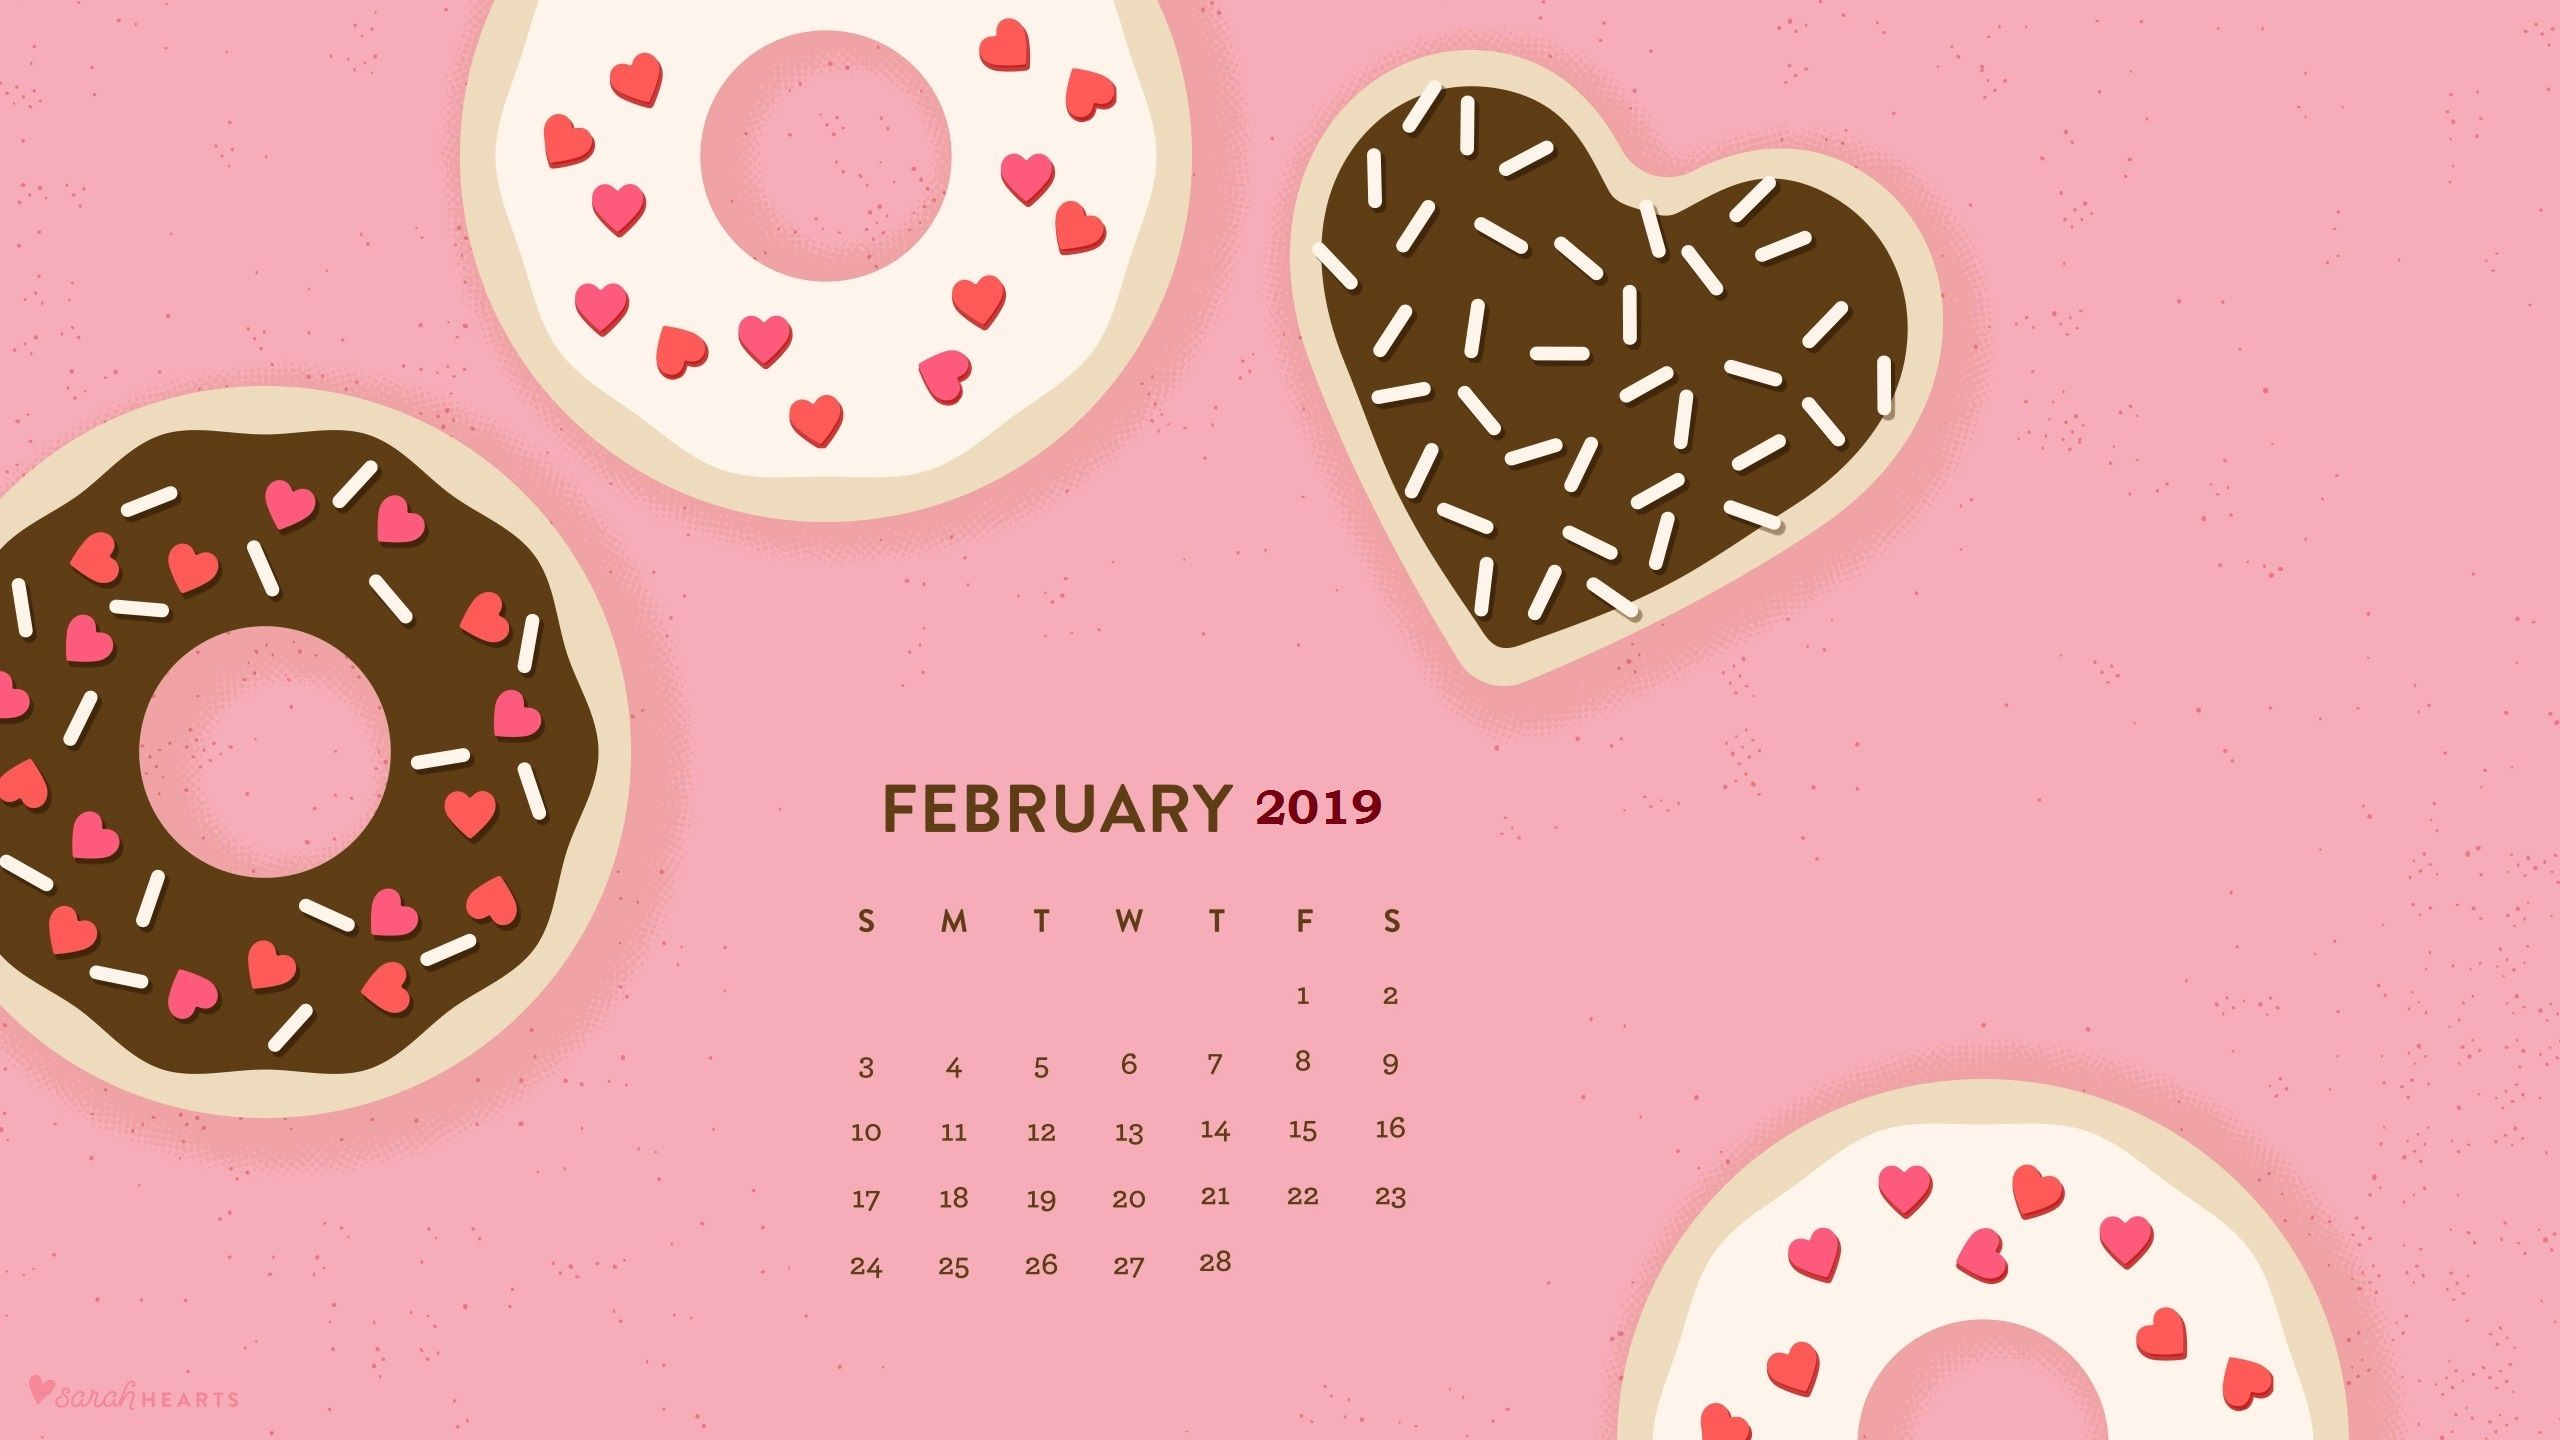 February 2019 HD Calendar Wallpaper Cute wallpapers for